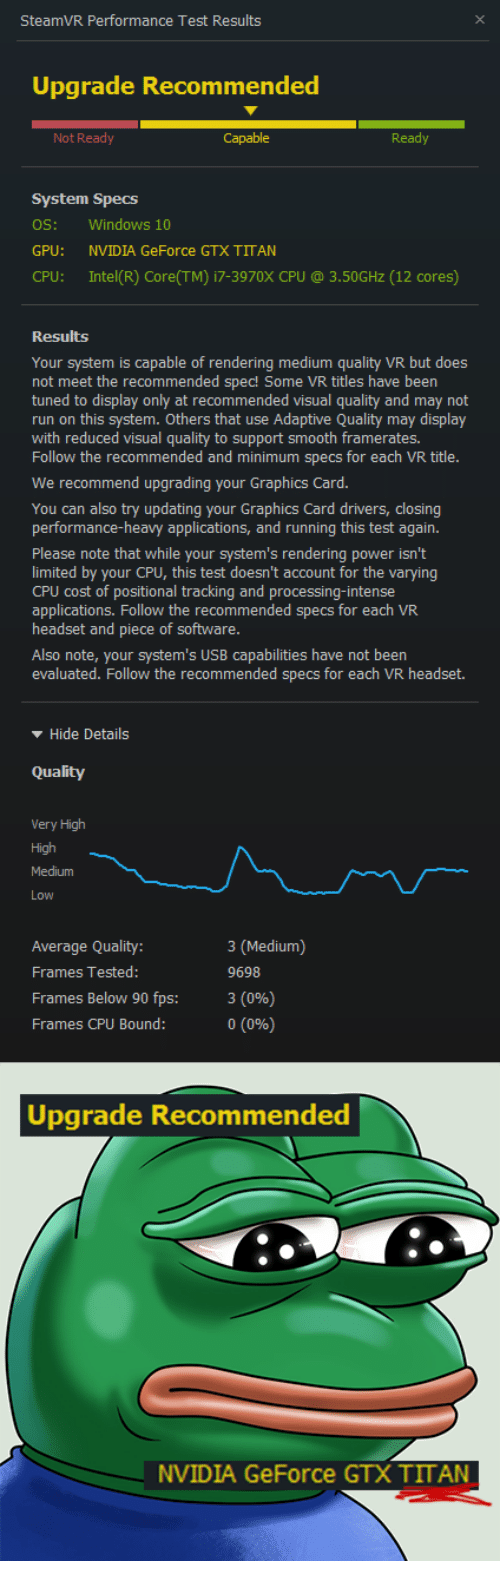 SteamVR Performance Test Results Upgrade Recommended Not Ready Ready